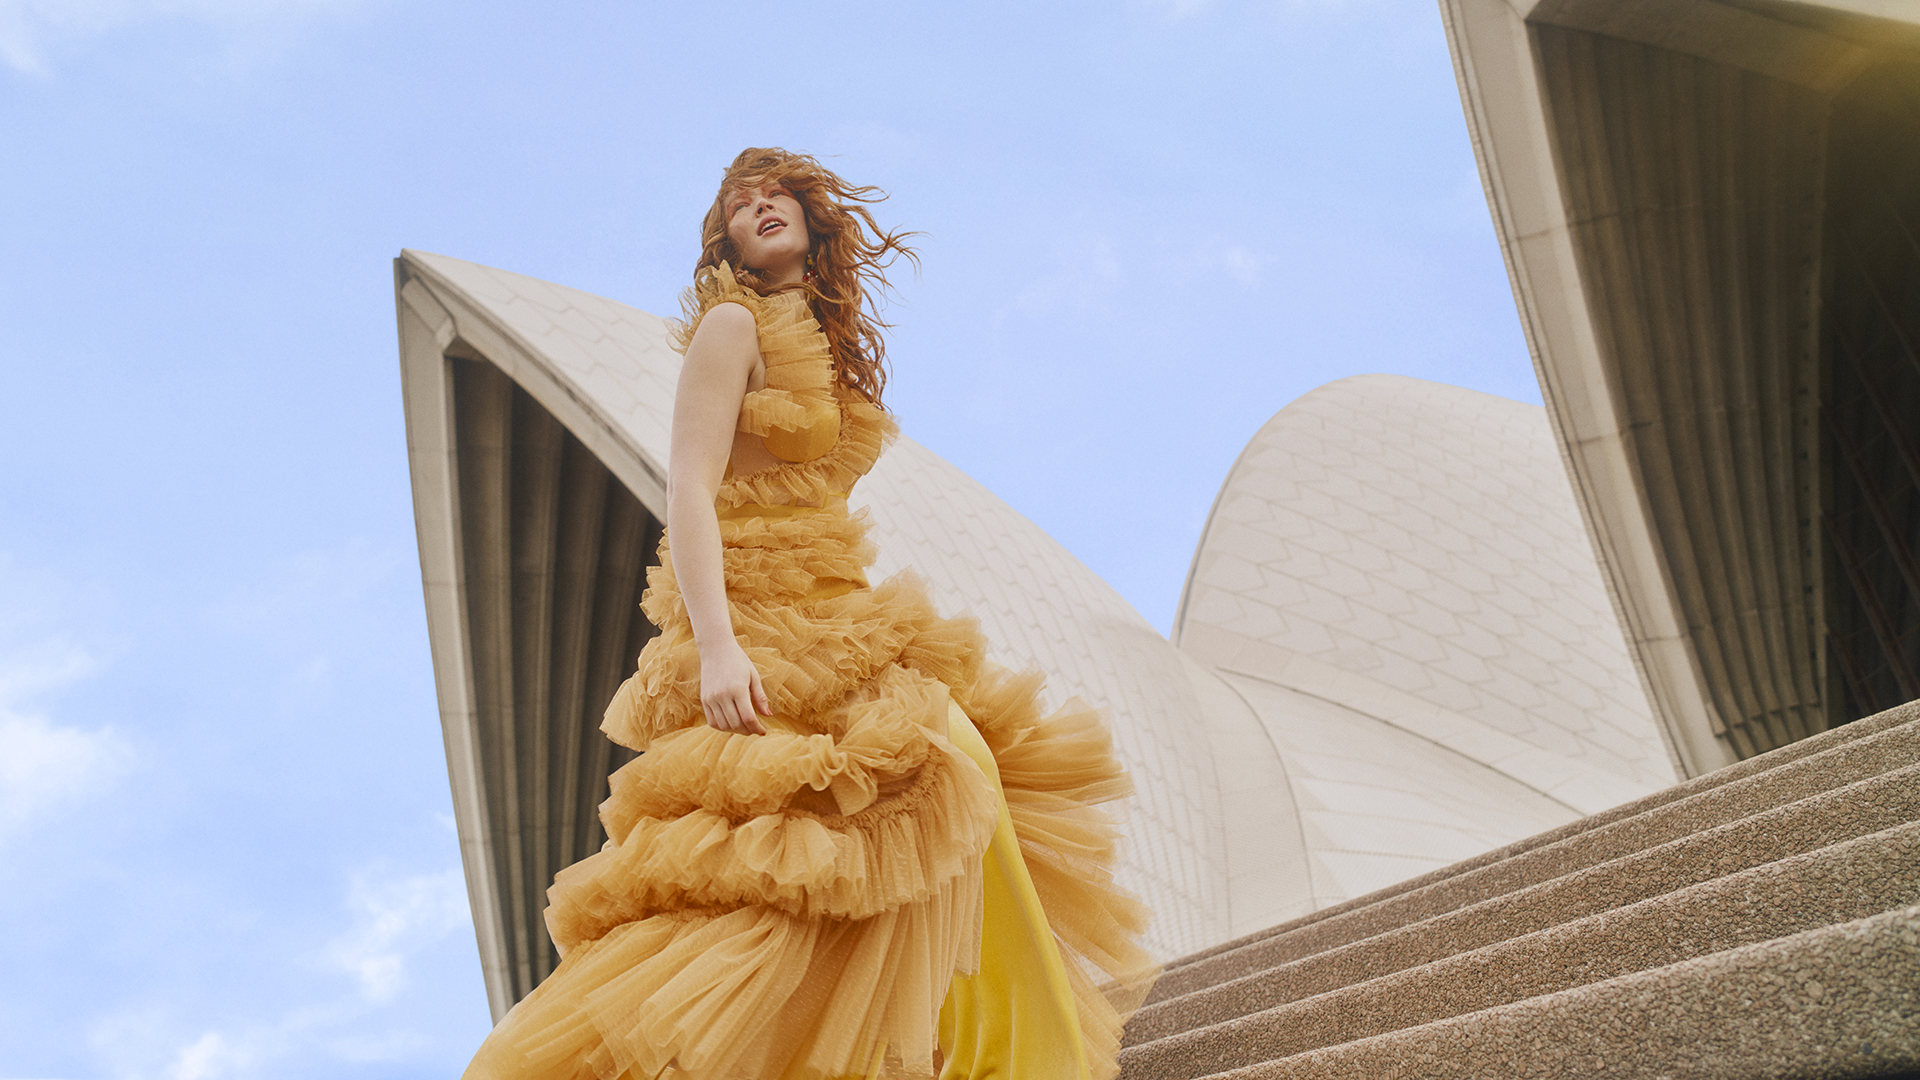 2021 Opera at the Sydney Opera House (Mon – Fri) – Premium Reserve